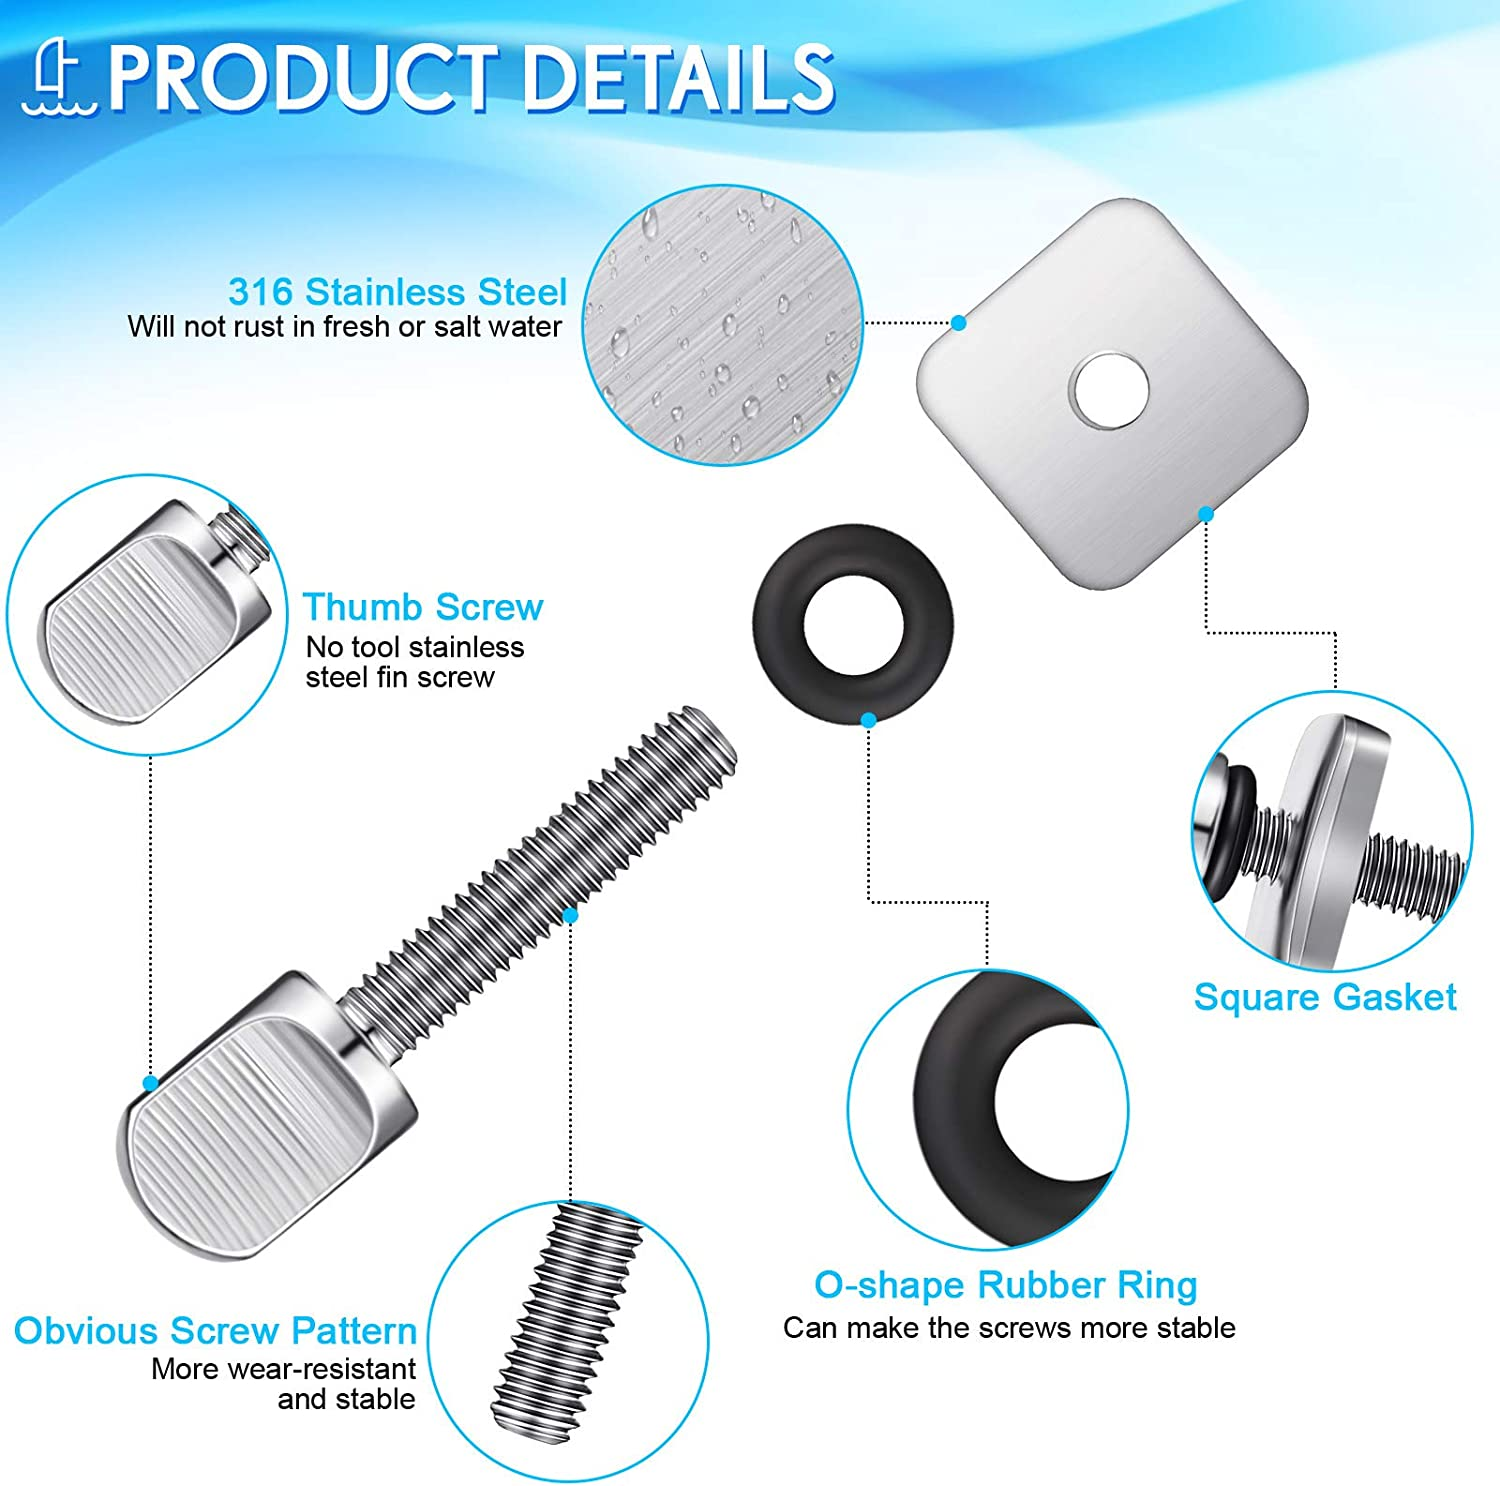 3 Pack Fin Screws for Surfboard No Tool Stainless Steel Thumb Fin Screw and Plate for Surf Longboard and SUP